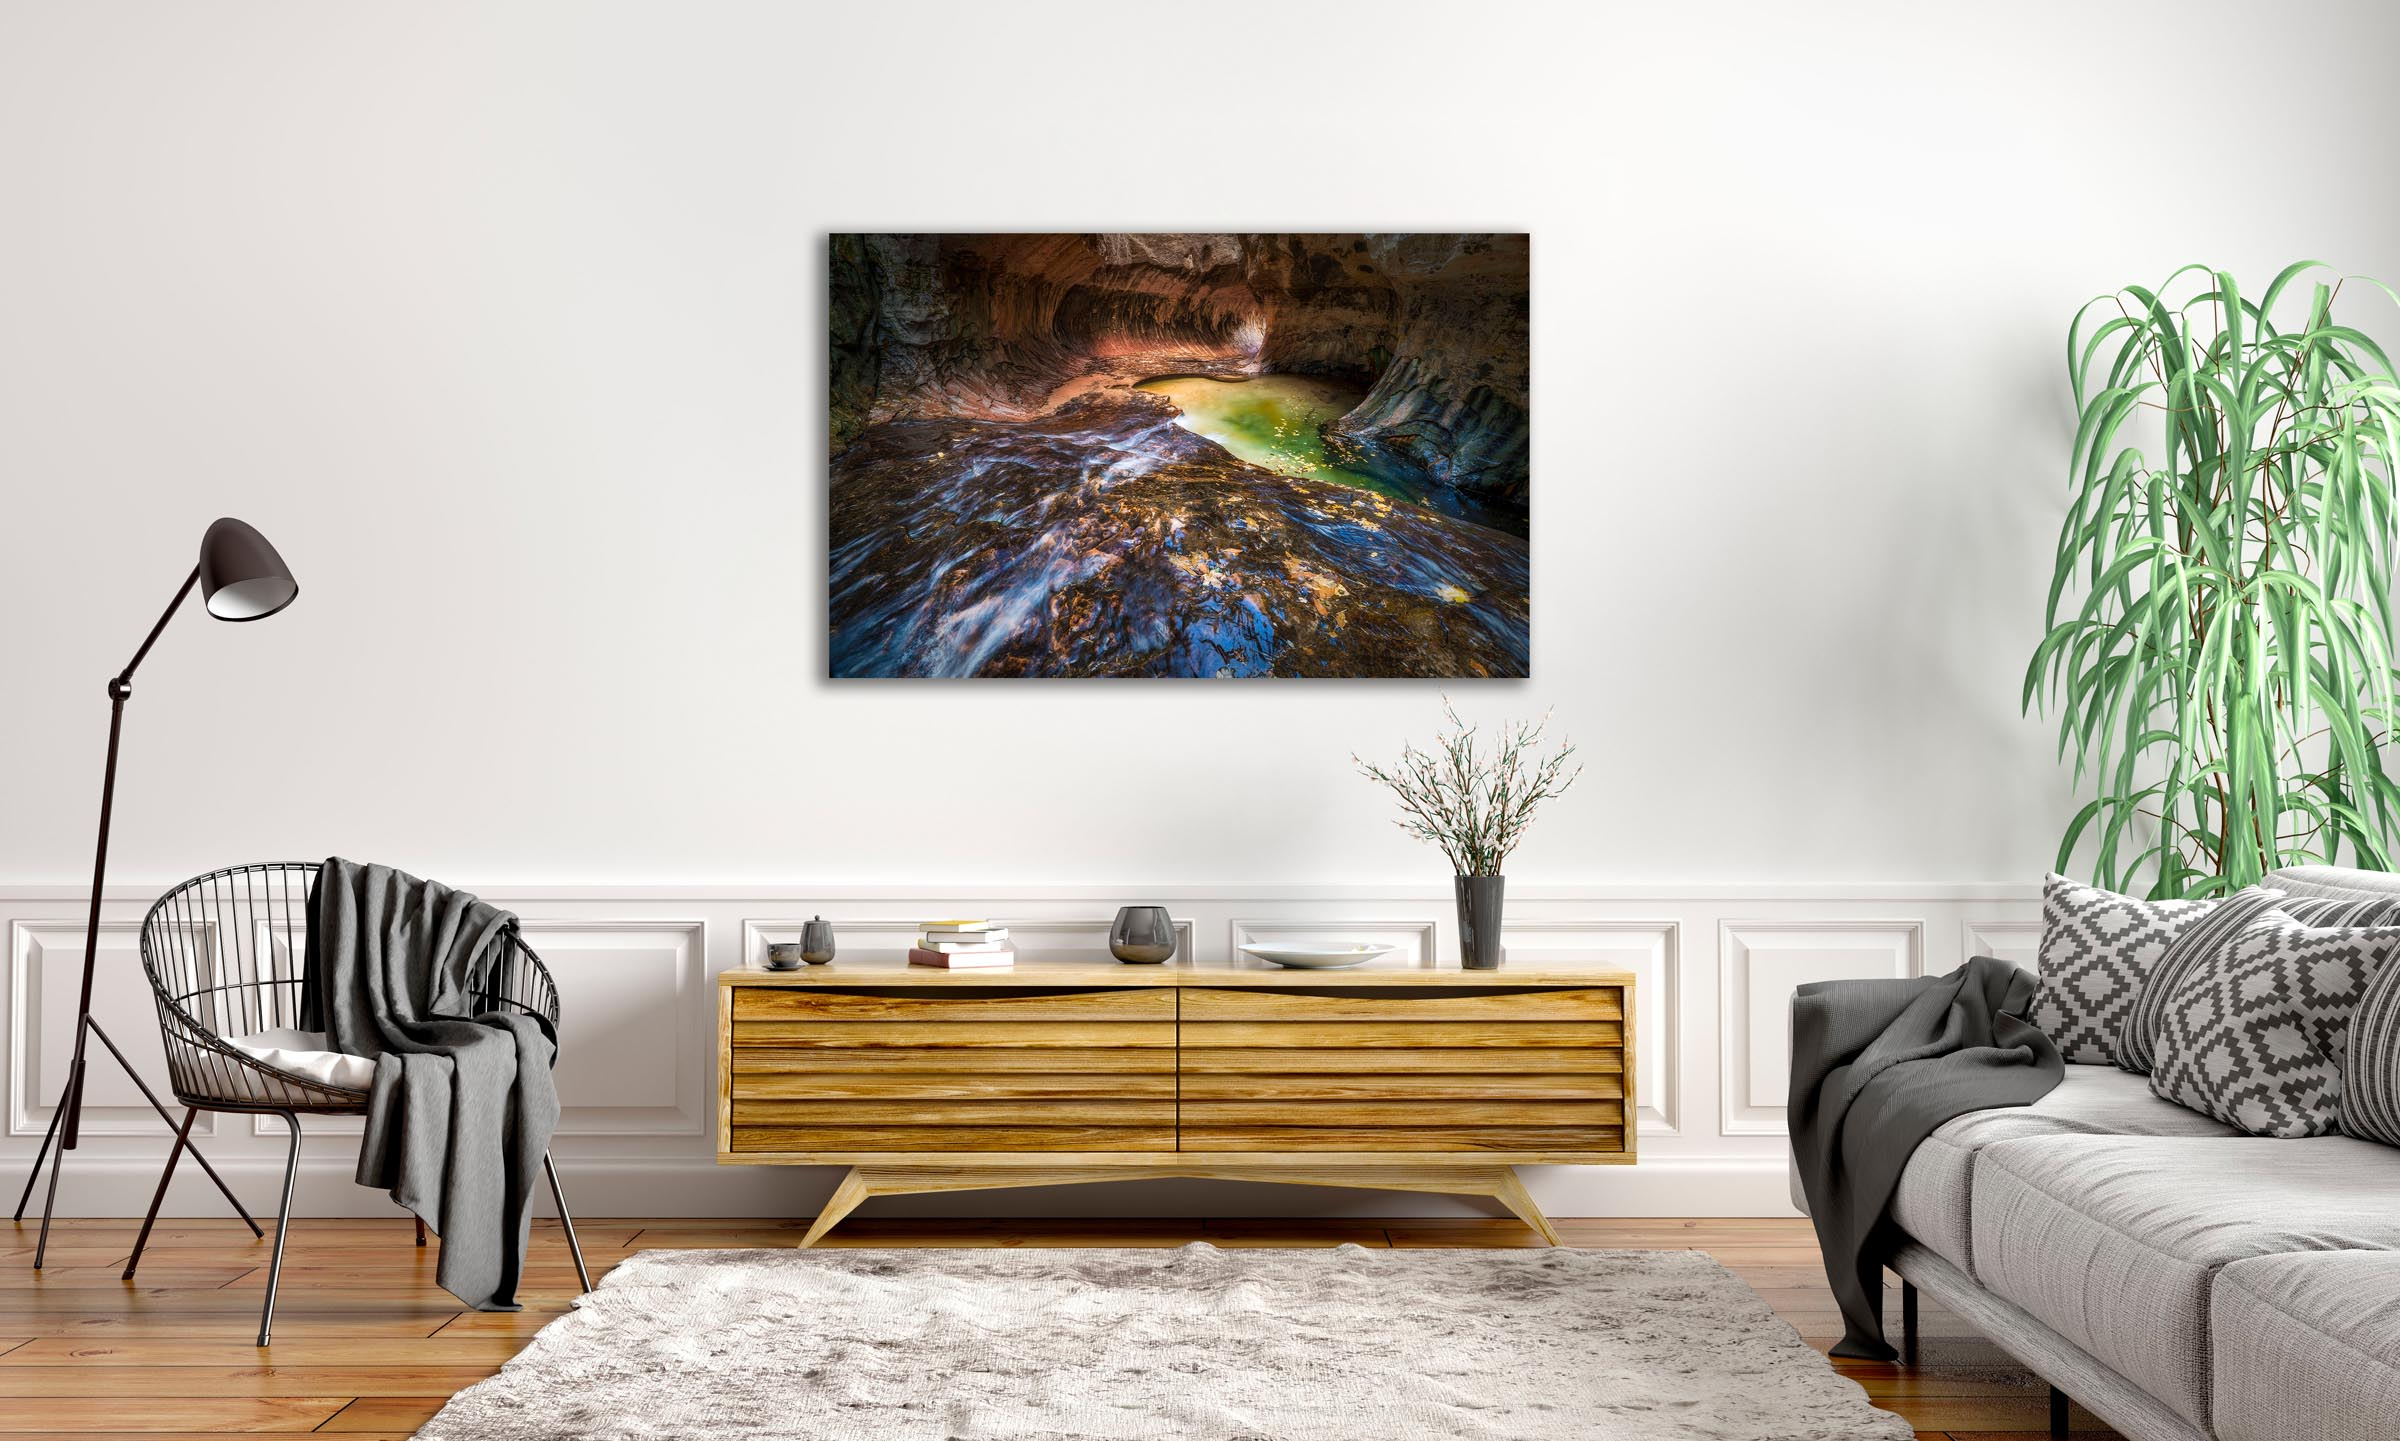 Wall art of Subway in Zion, Utah by Brent Goldman Photography